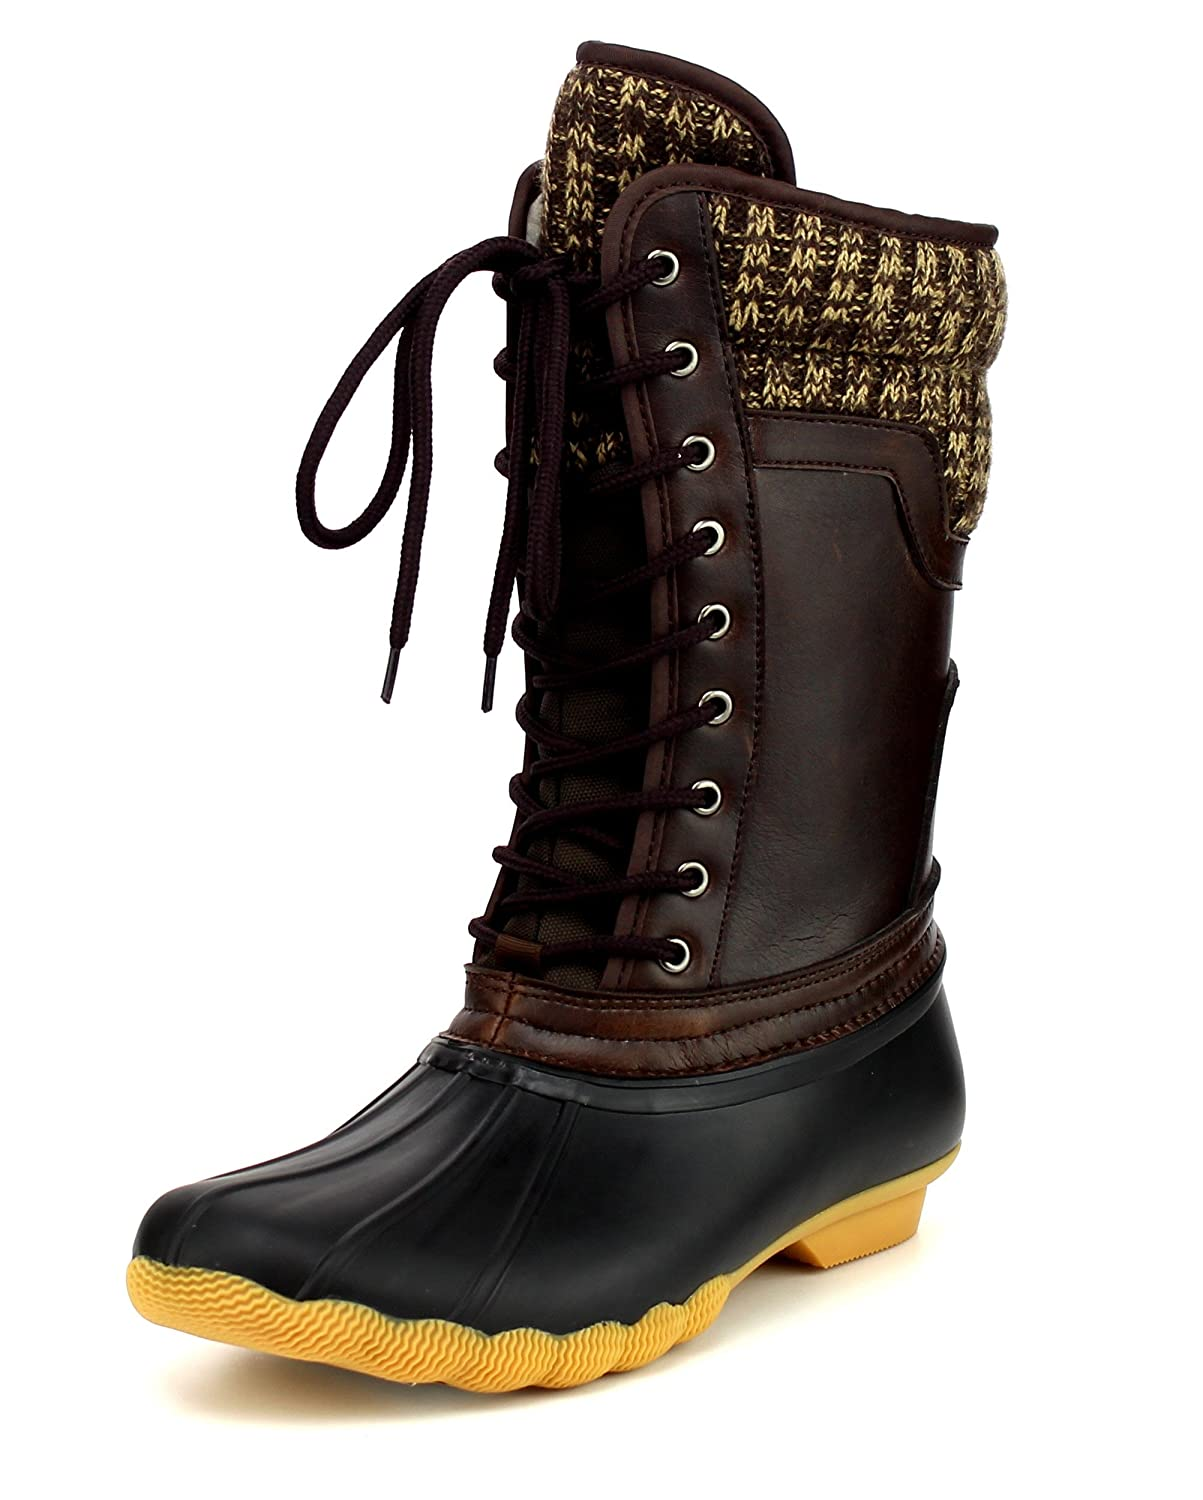 Women's Waterproof Duck Boots Rubber Two Tone Mix Media Skimmers Winter Rain Snow Mid Calf Boots